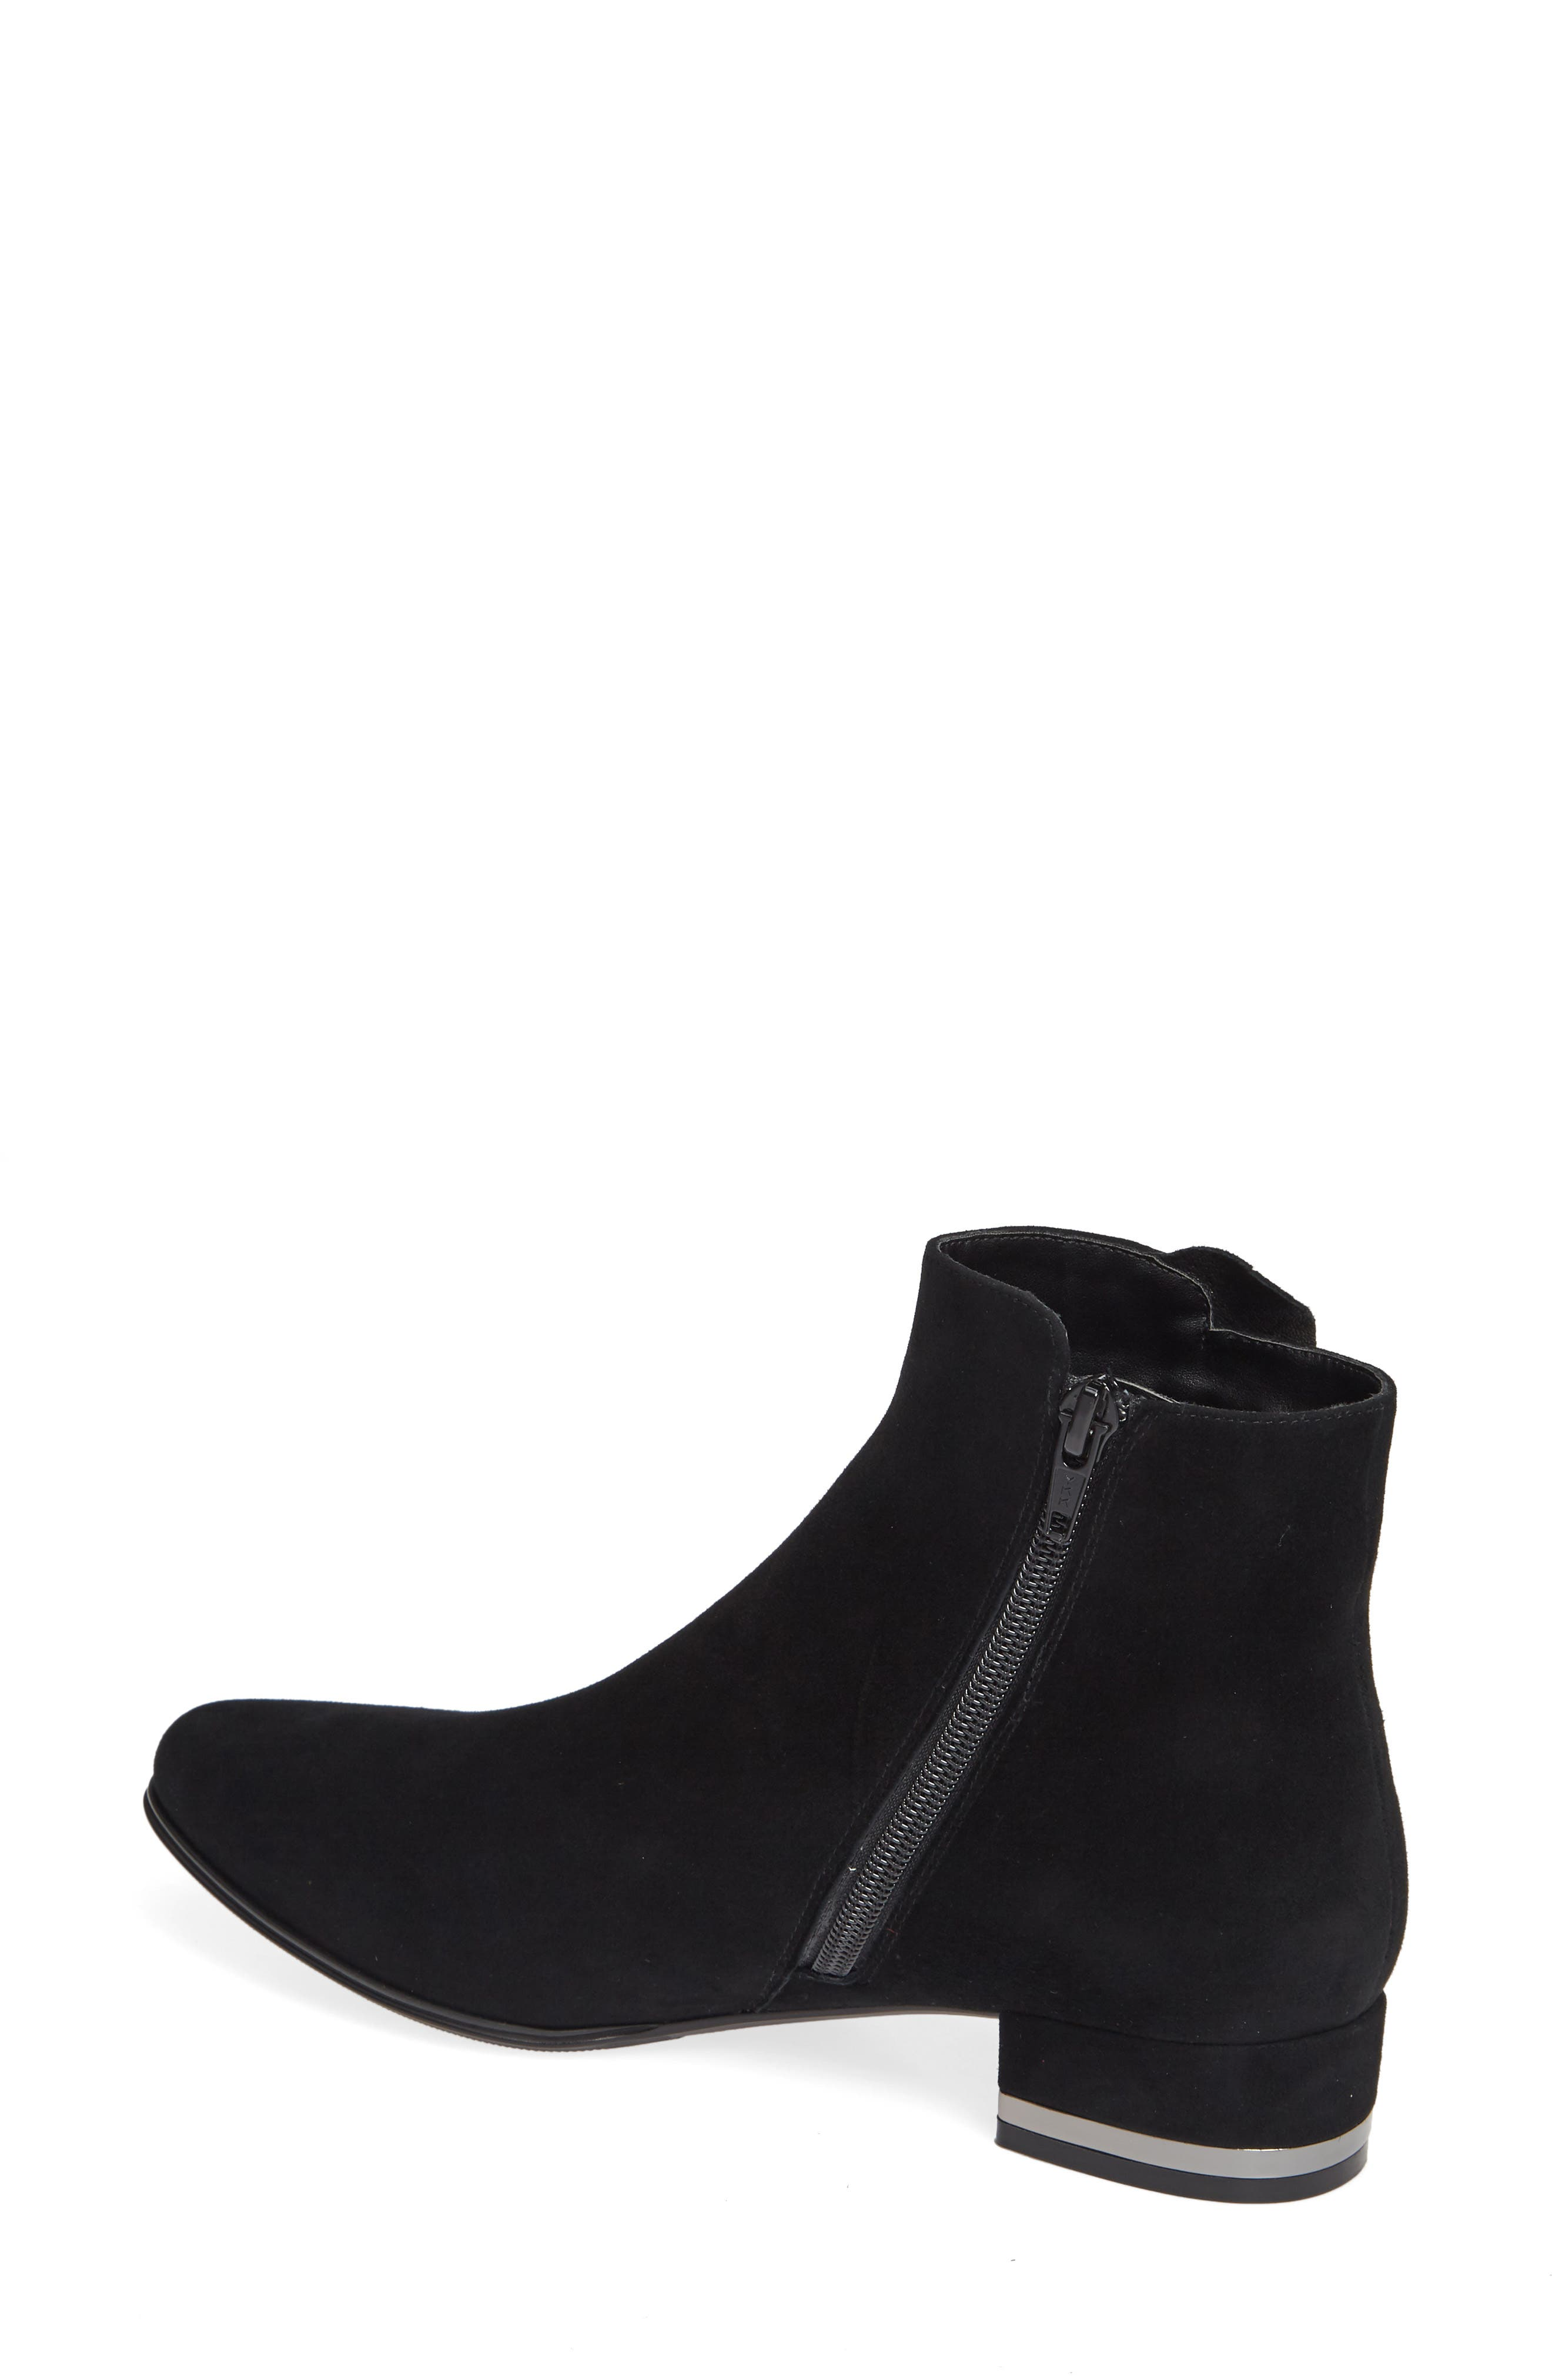 Amoke Bootie,                             Alternate thumbnail 2, color,                             BLACK SUEDE